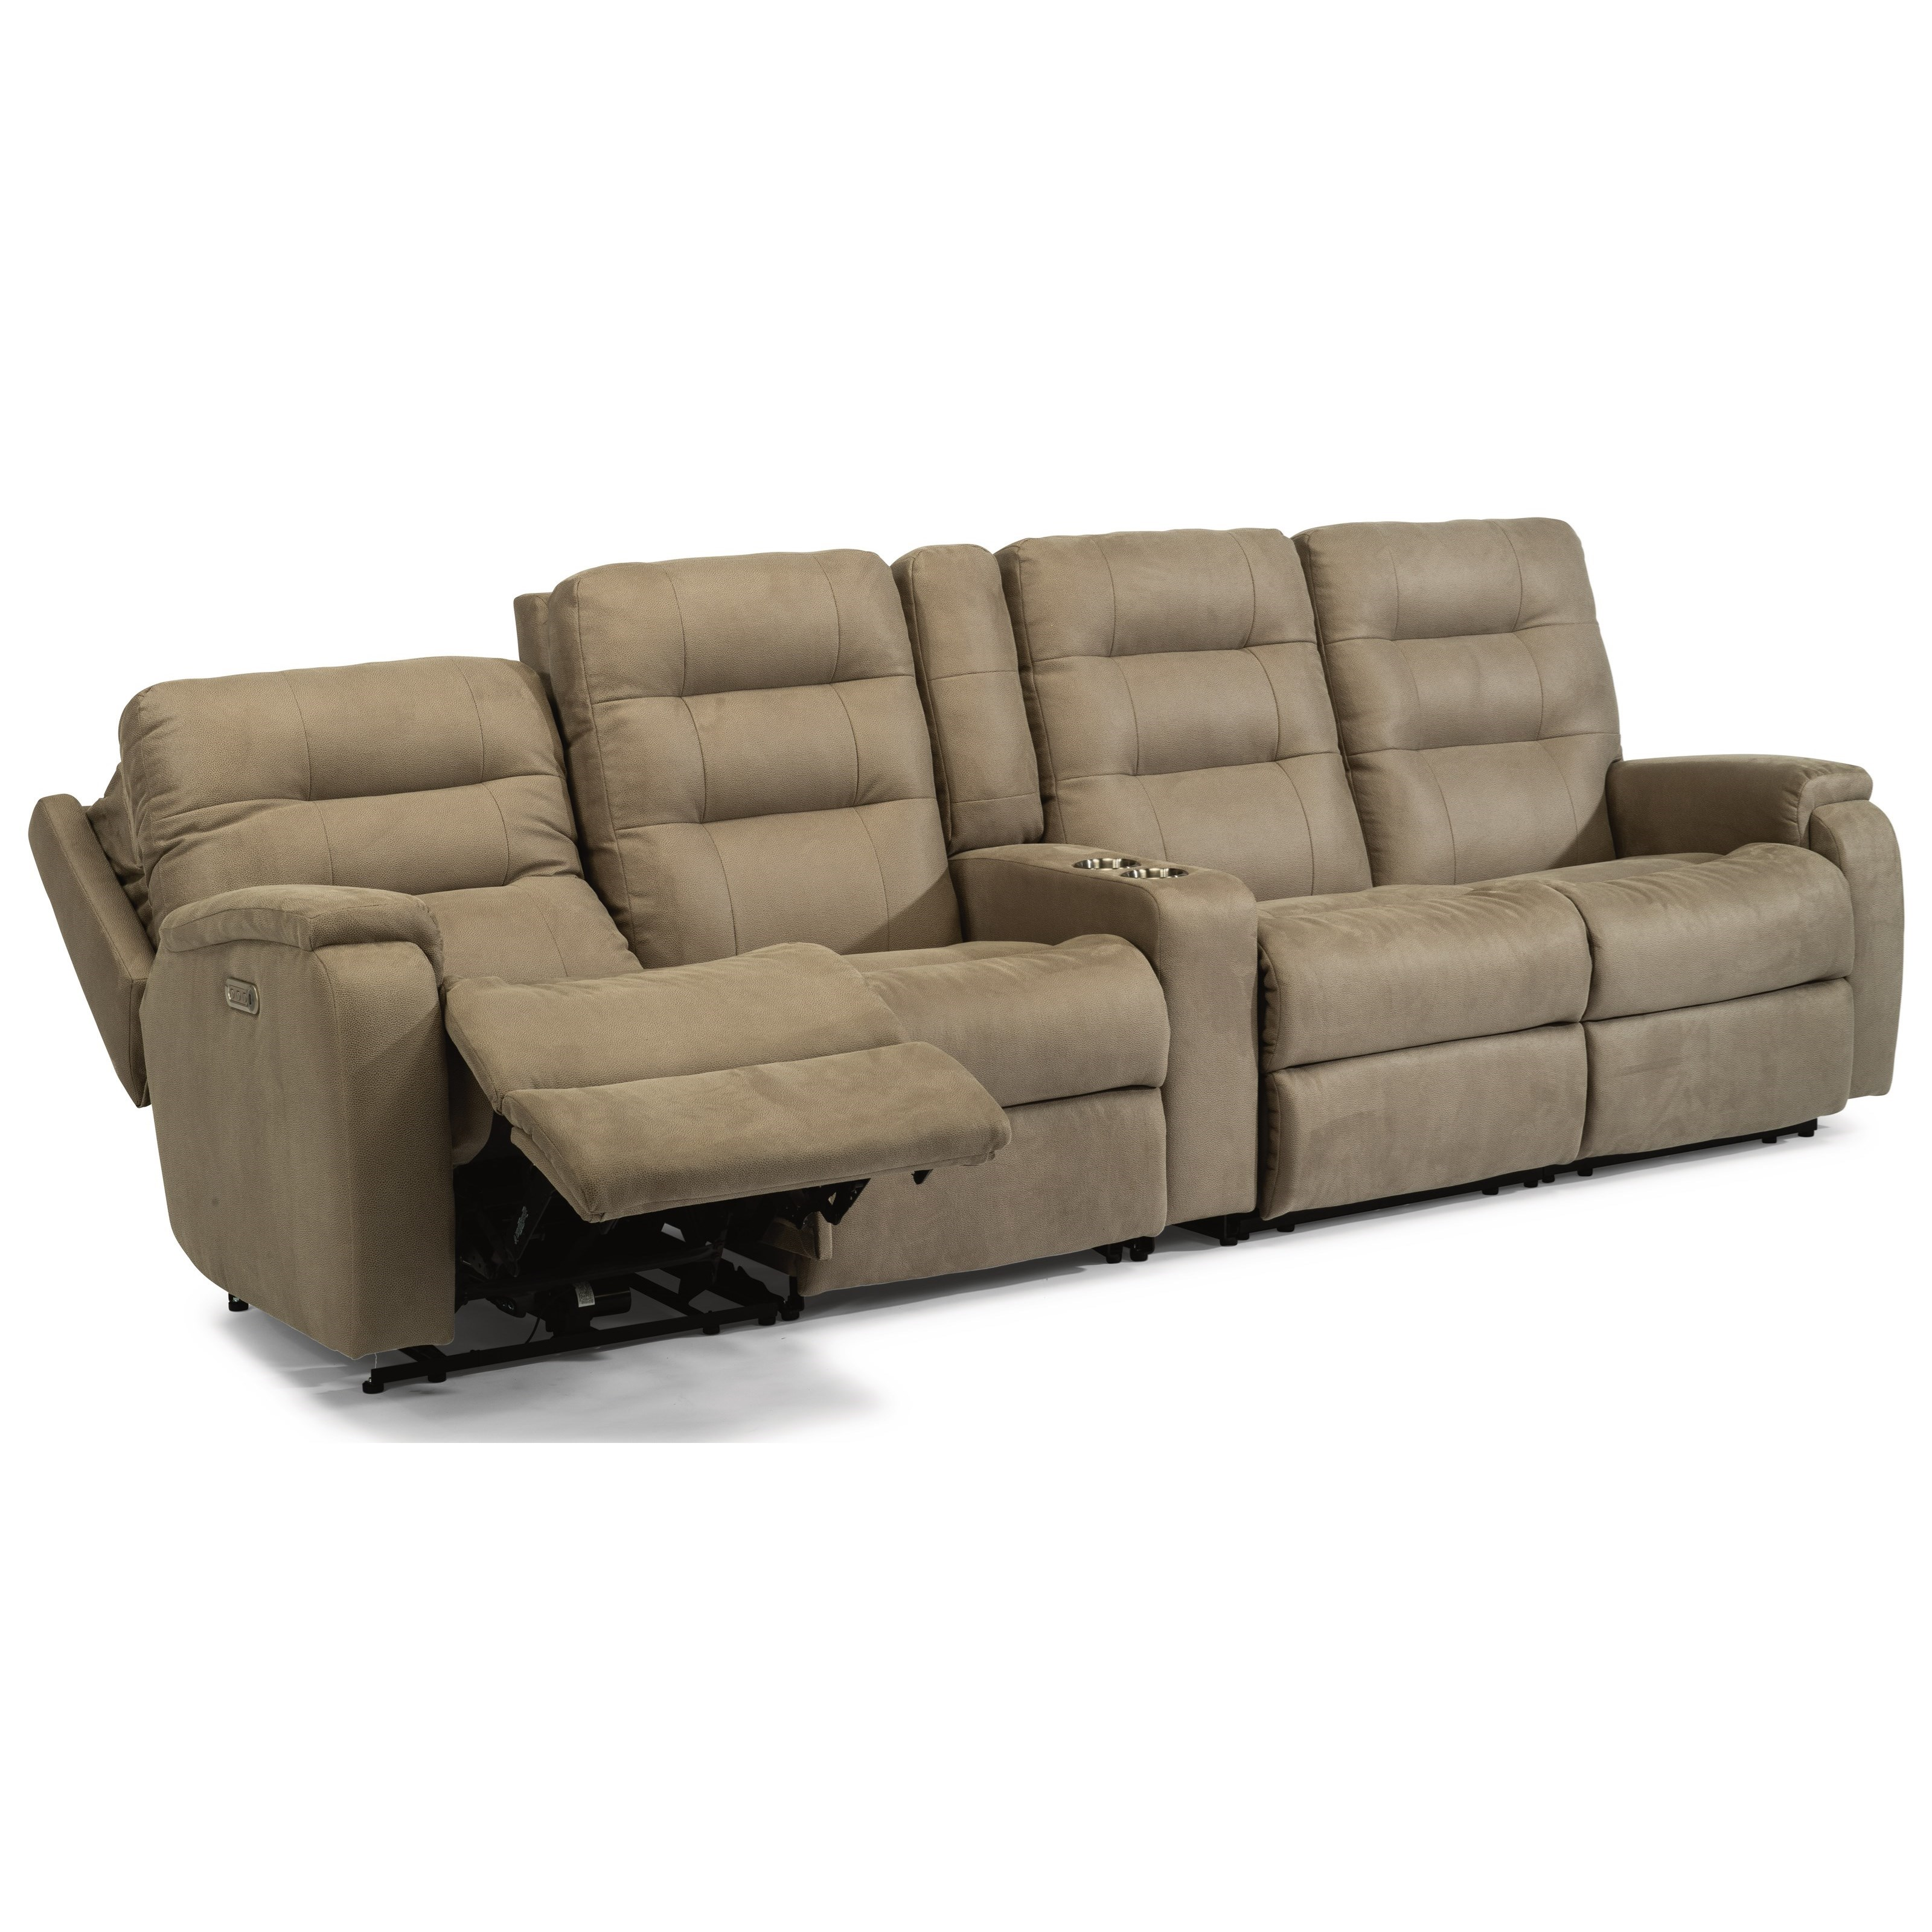 Arlo 5-Pc Pwr Headrest & Lumbar Rec Sectional by Flexsteel at Rooms and Rest